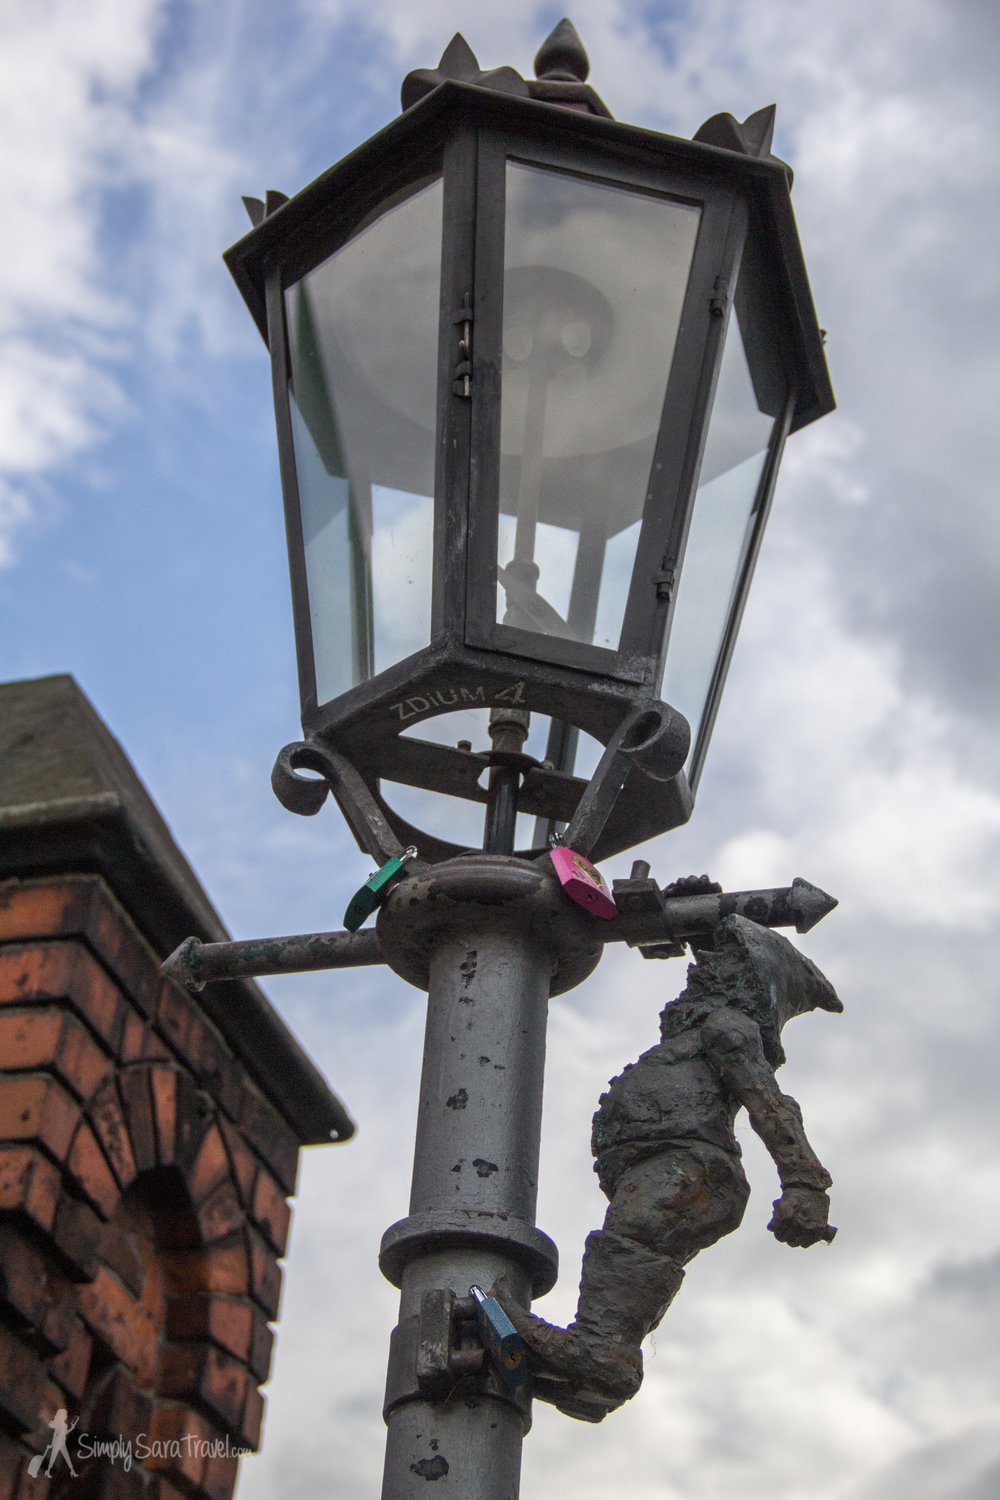 Look up to spot the Lamplighter on the Ostrów Tumski bridge!